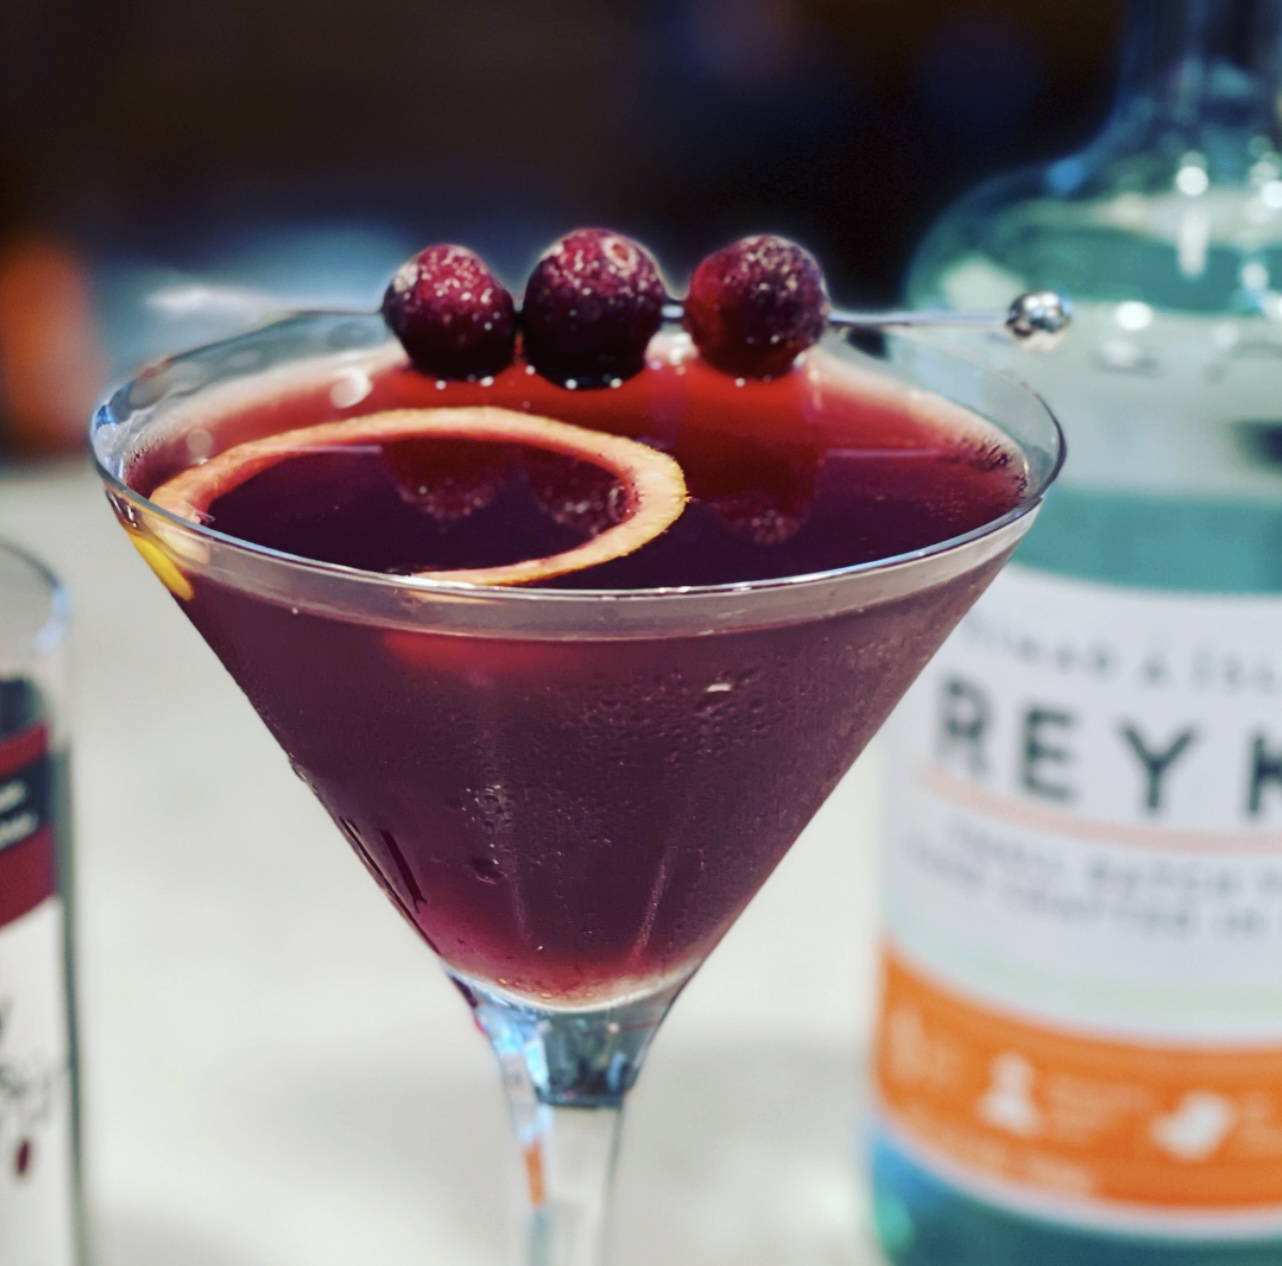 The Pacific Drift - An Exquisite Cranberry Martini By Steven Shomler The Culinary Treasure Network